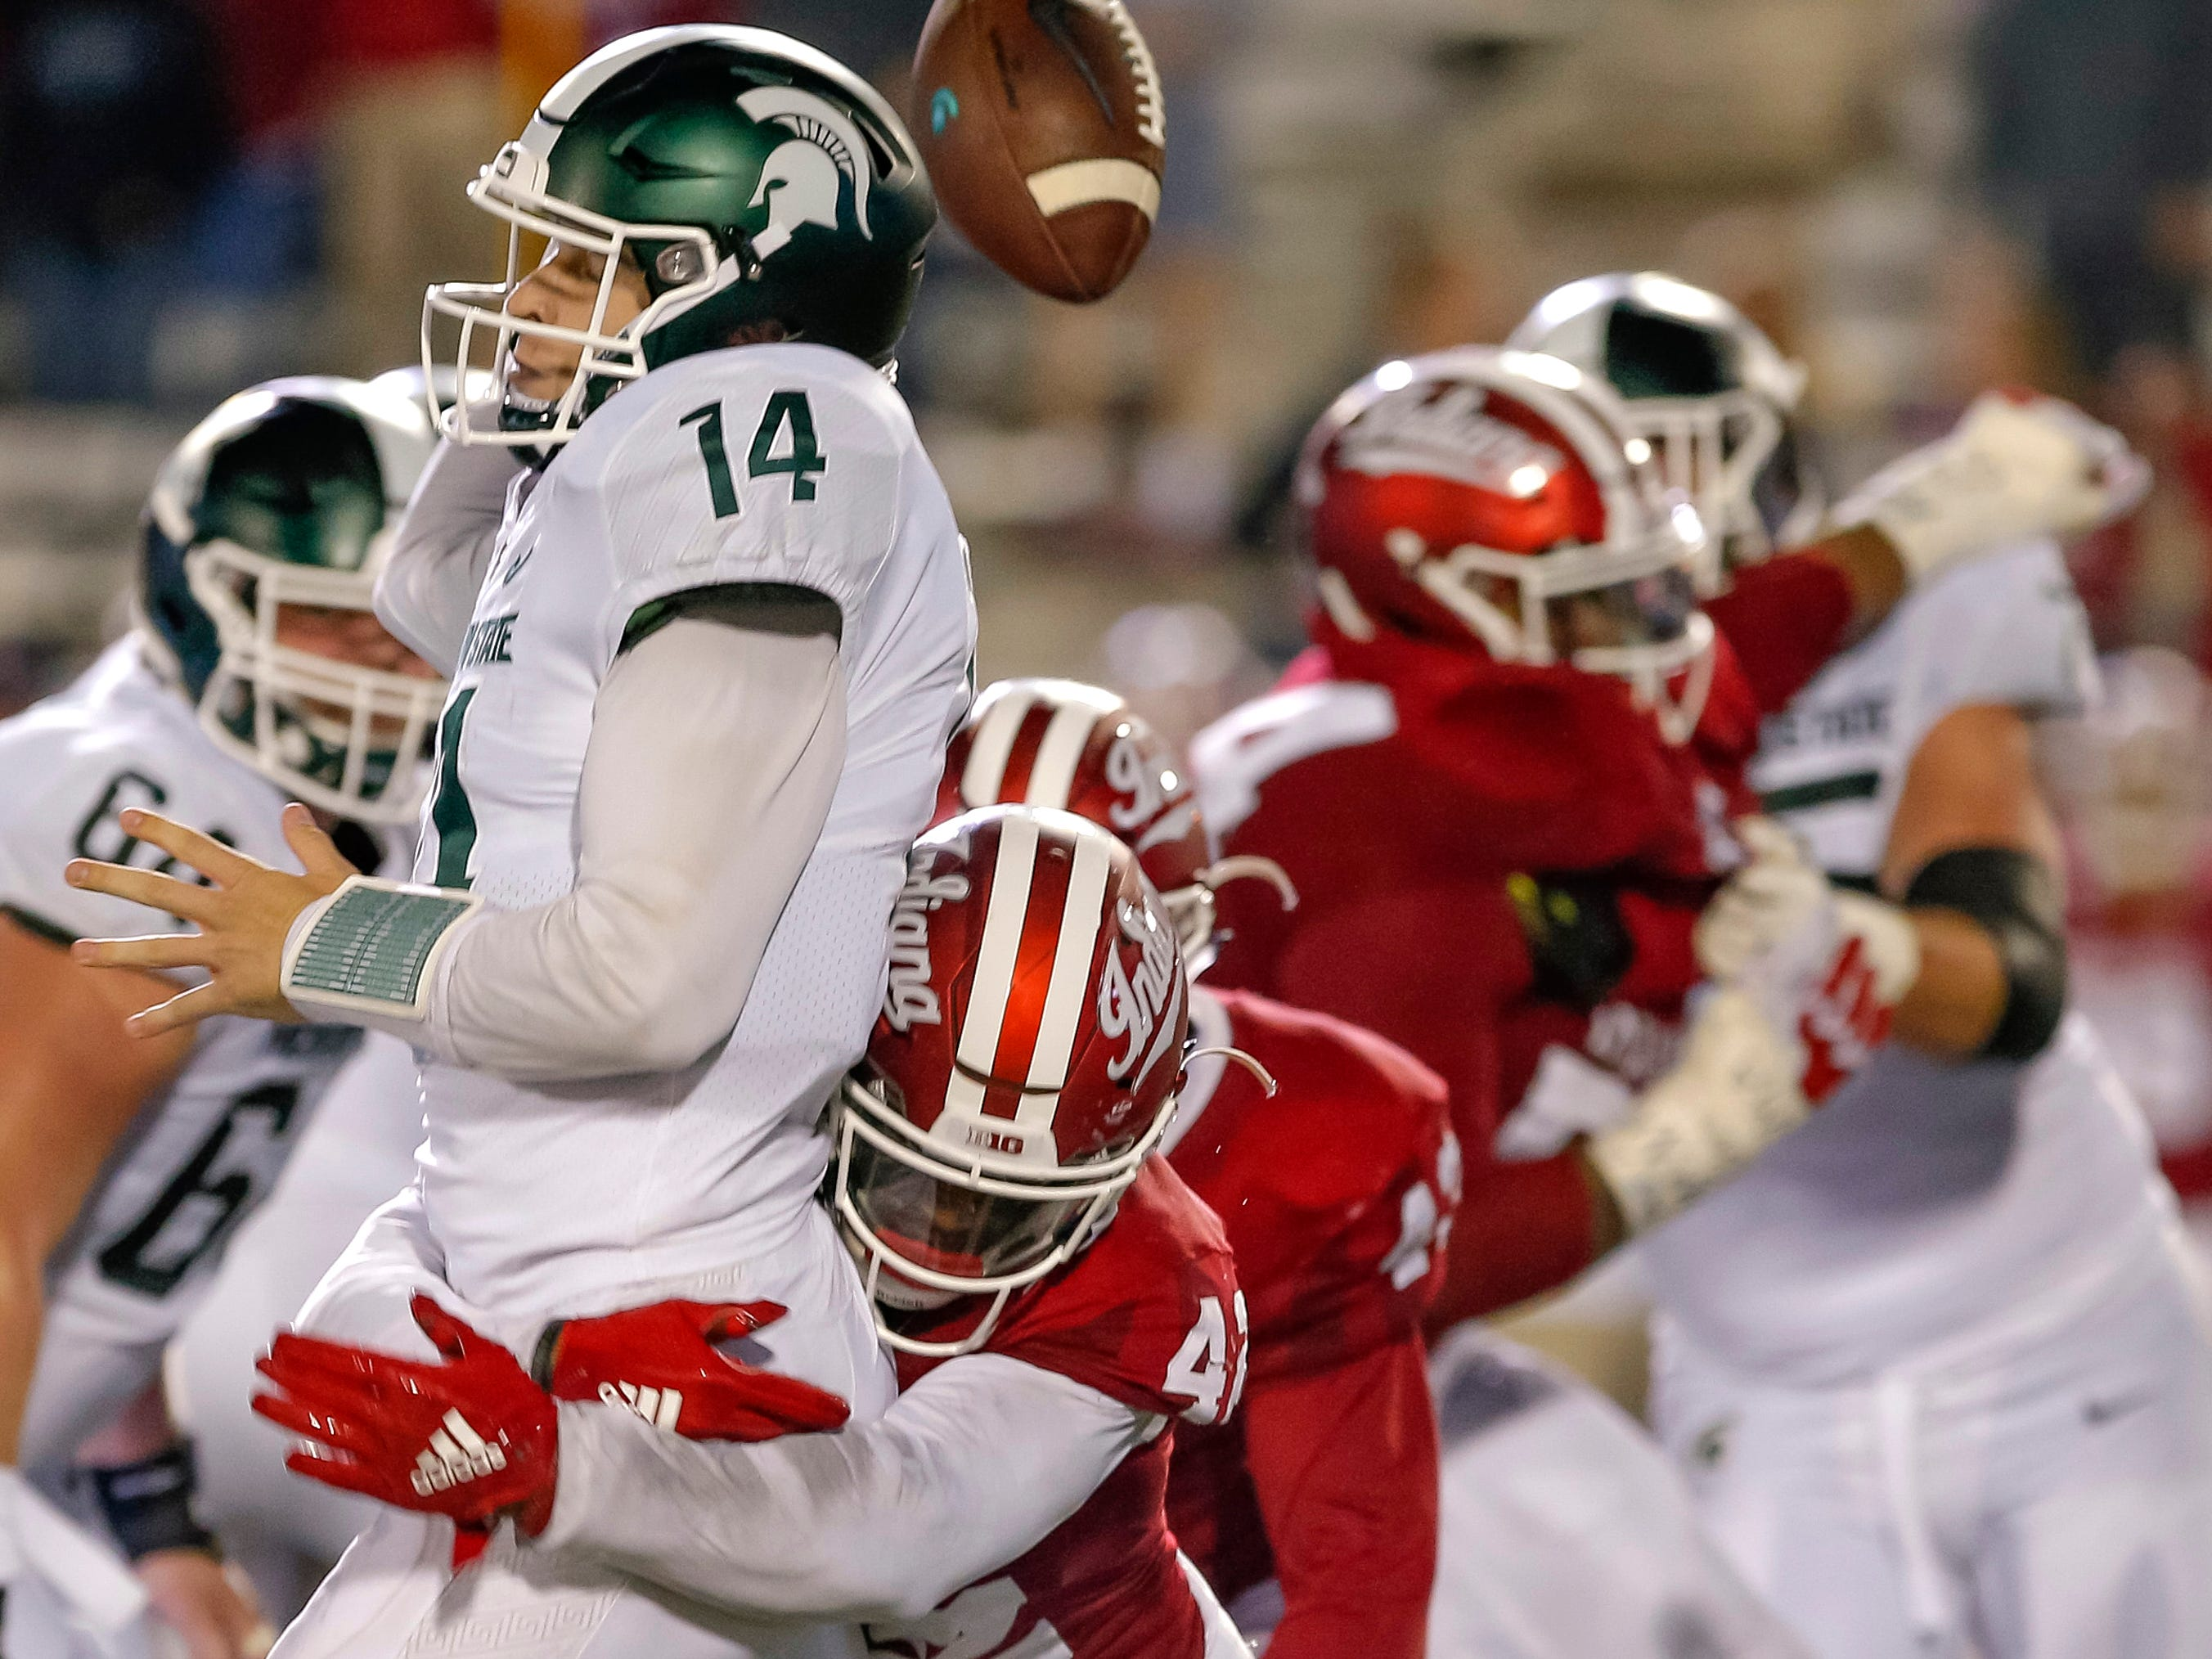 Brian Lewerke #14 of the Michigan State Spartans fumbles the ball while throwing as Marcelino Ball #42 of the Indiana Hoosiers makes the hit at Memorial Stadium on September 22, 2018 in Bloomington, Indiana.